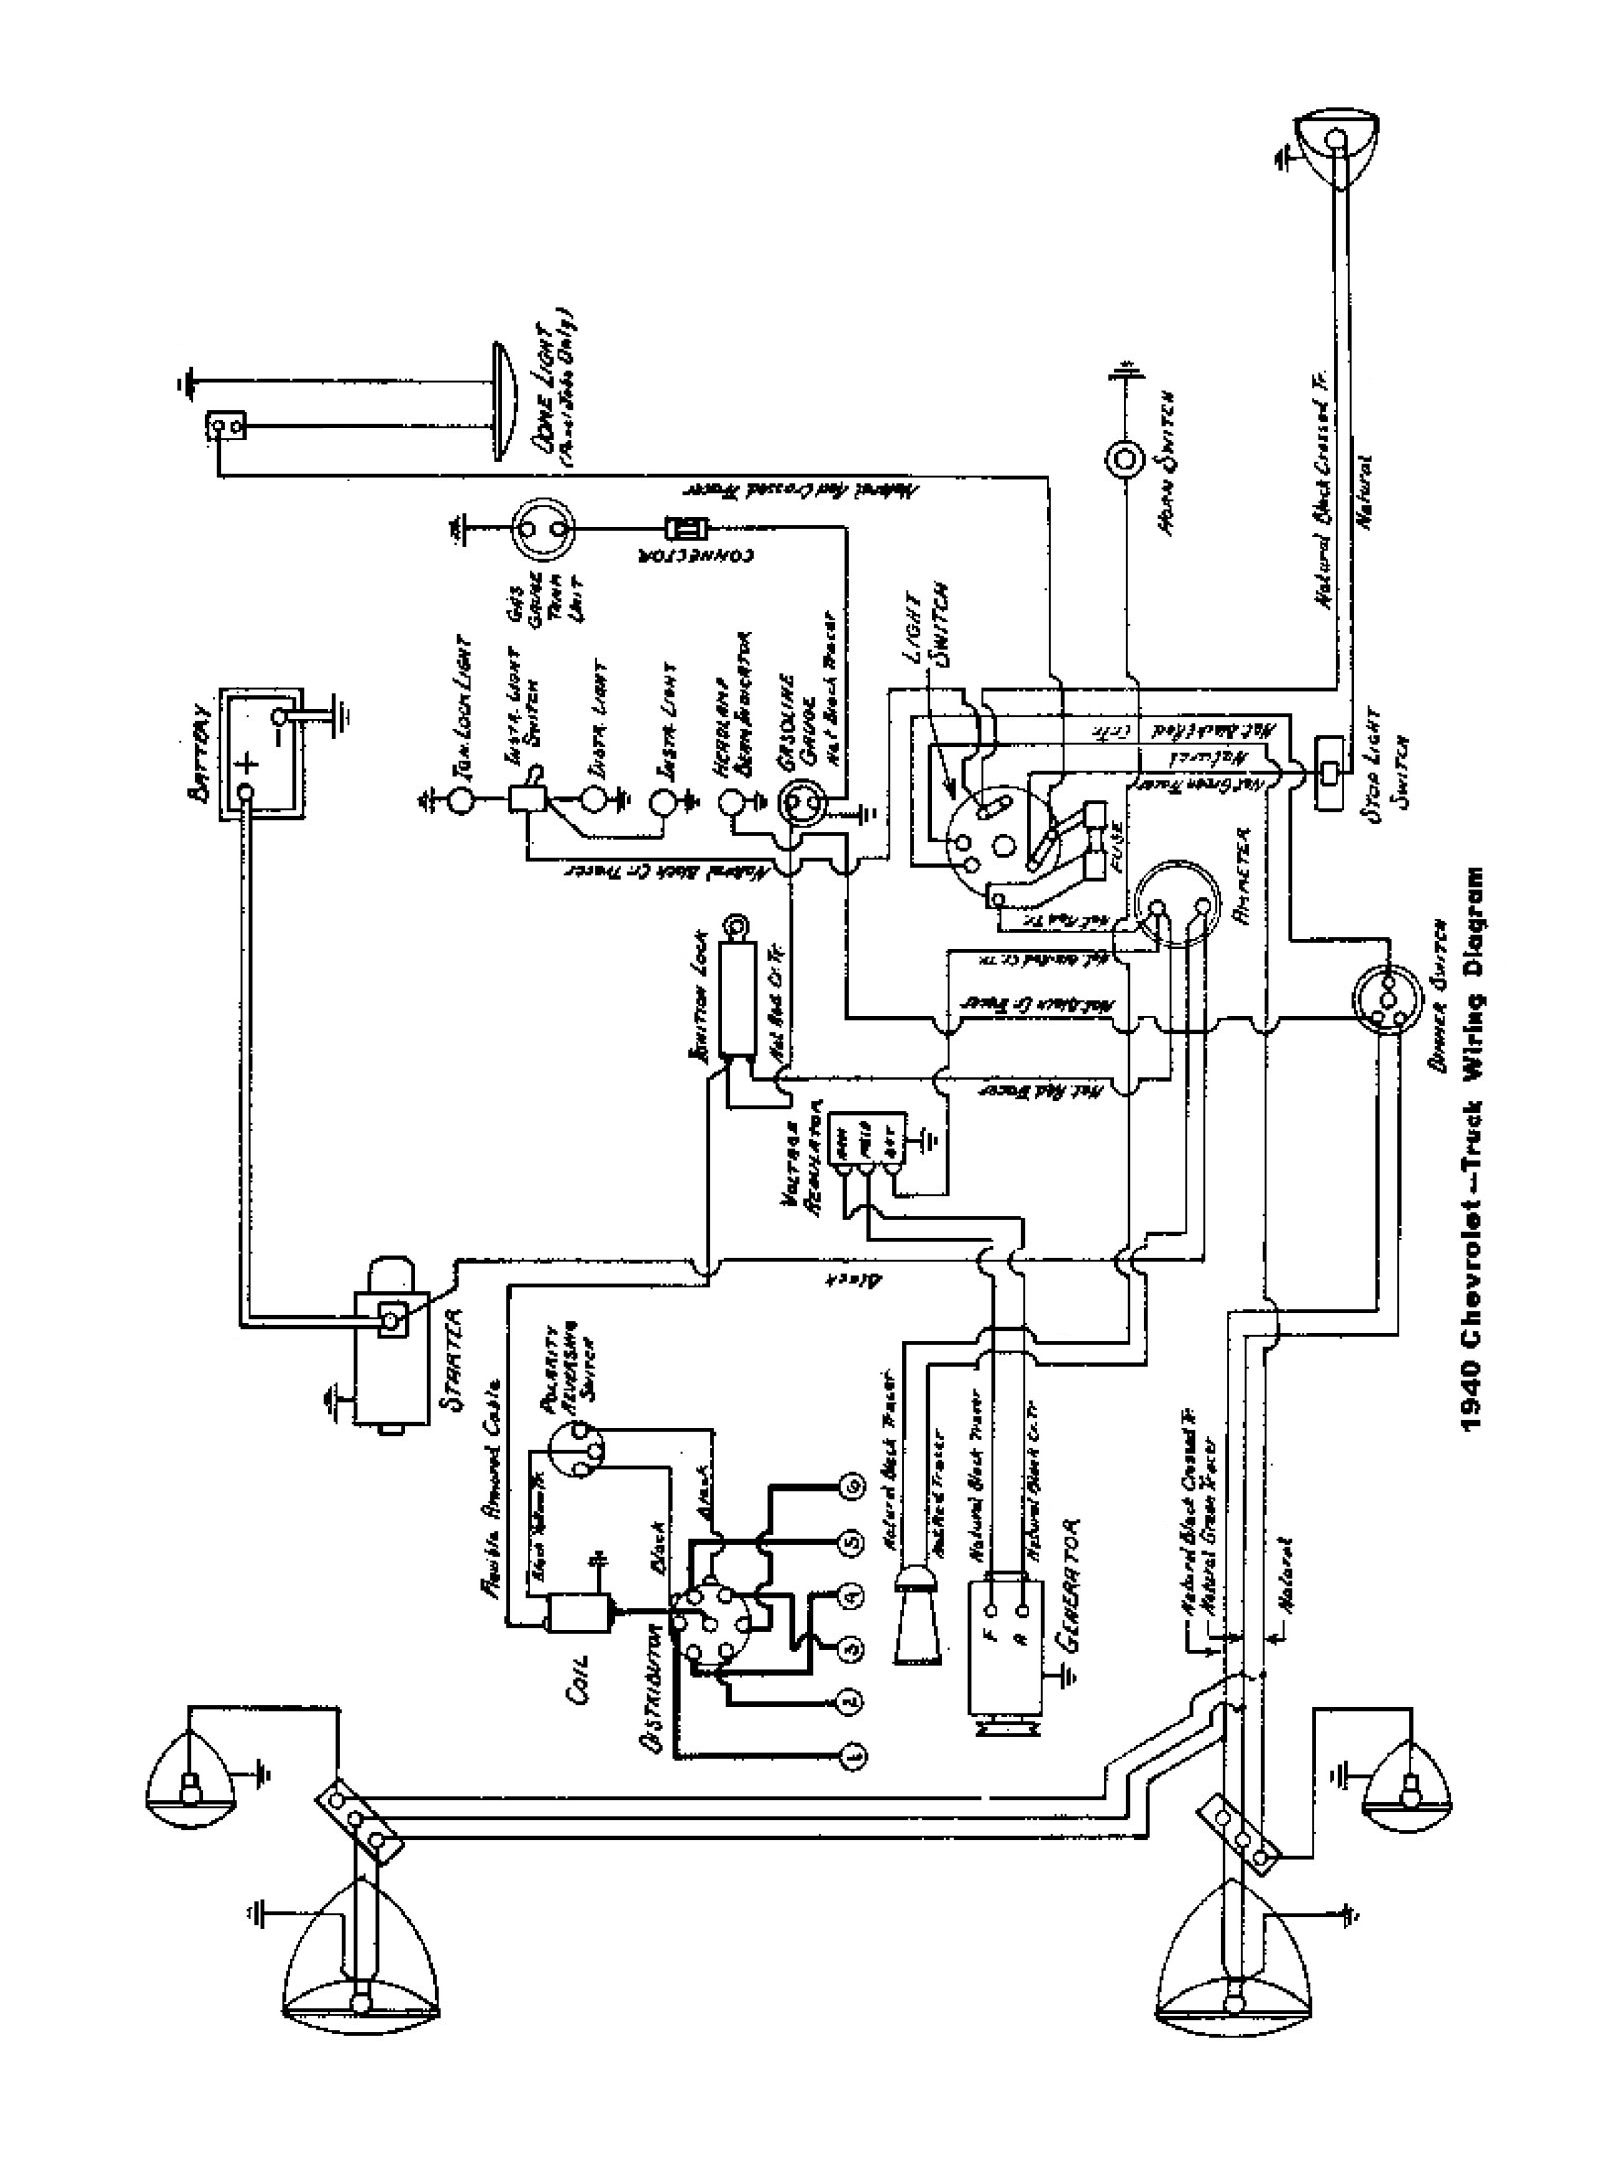 1981 Corvette Headlight Wiring Diagram - Jeep Subwoofer Wiring -  delco-electronics.tukune.jeanjaures37.fr | 1981 Corvette Headlight Wiring Diagram |  | Wiring Diagram Resource